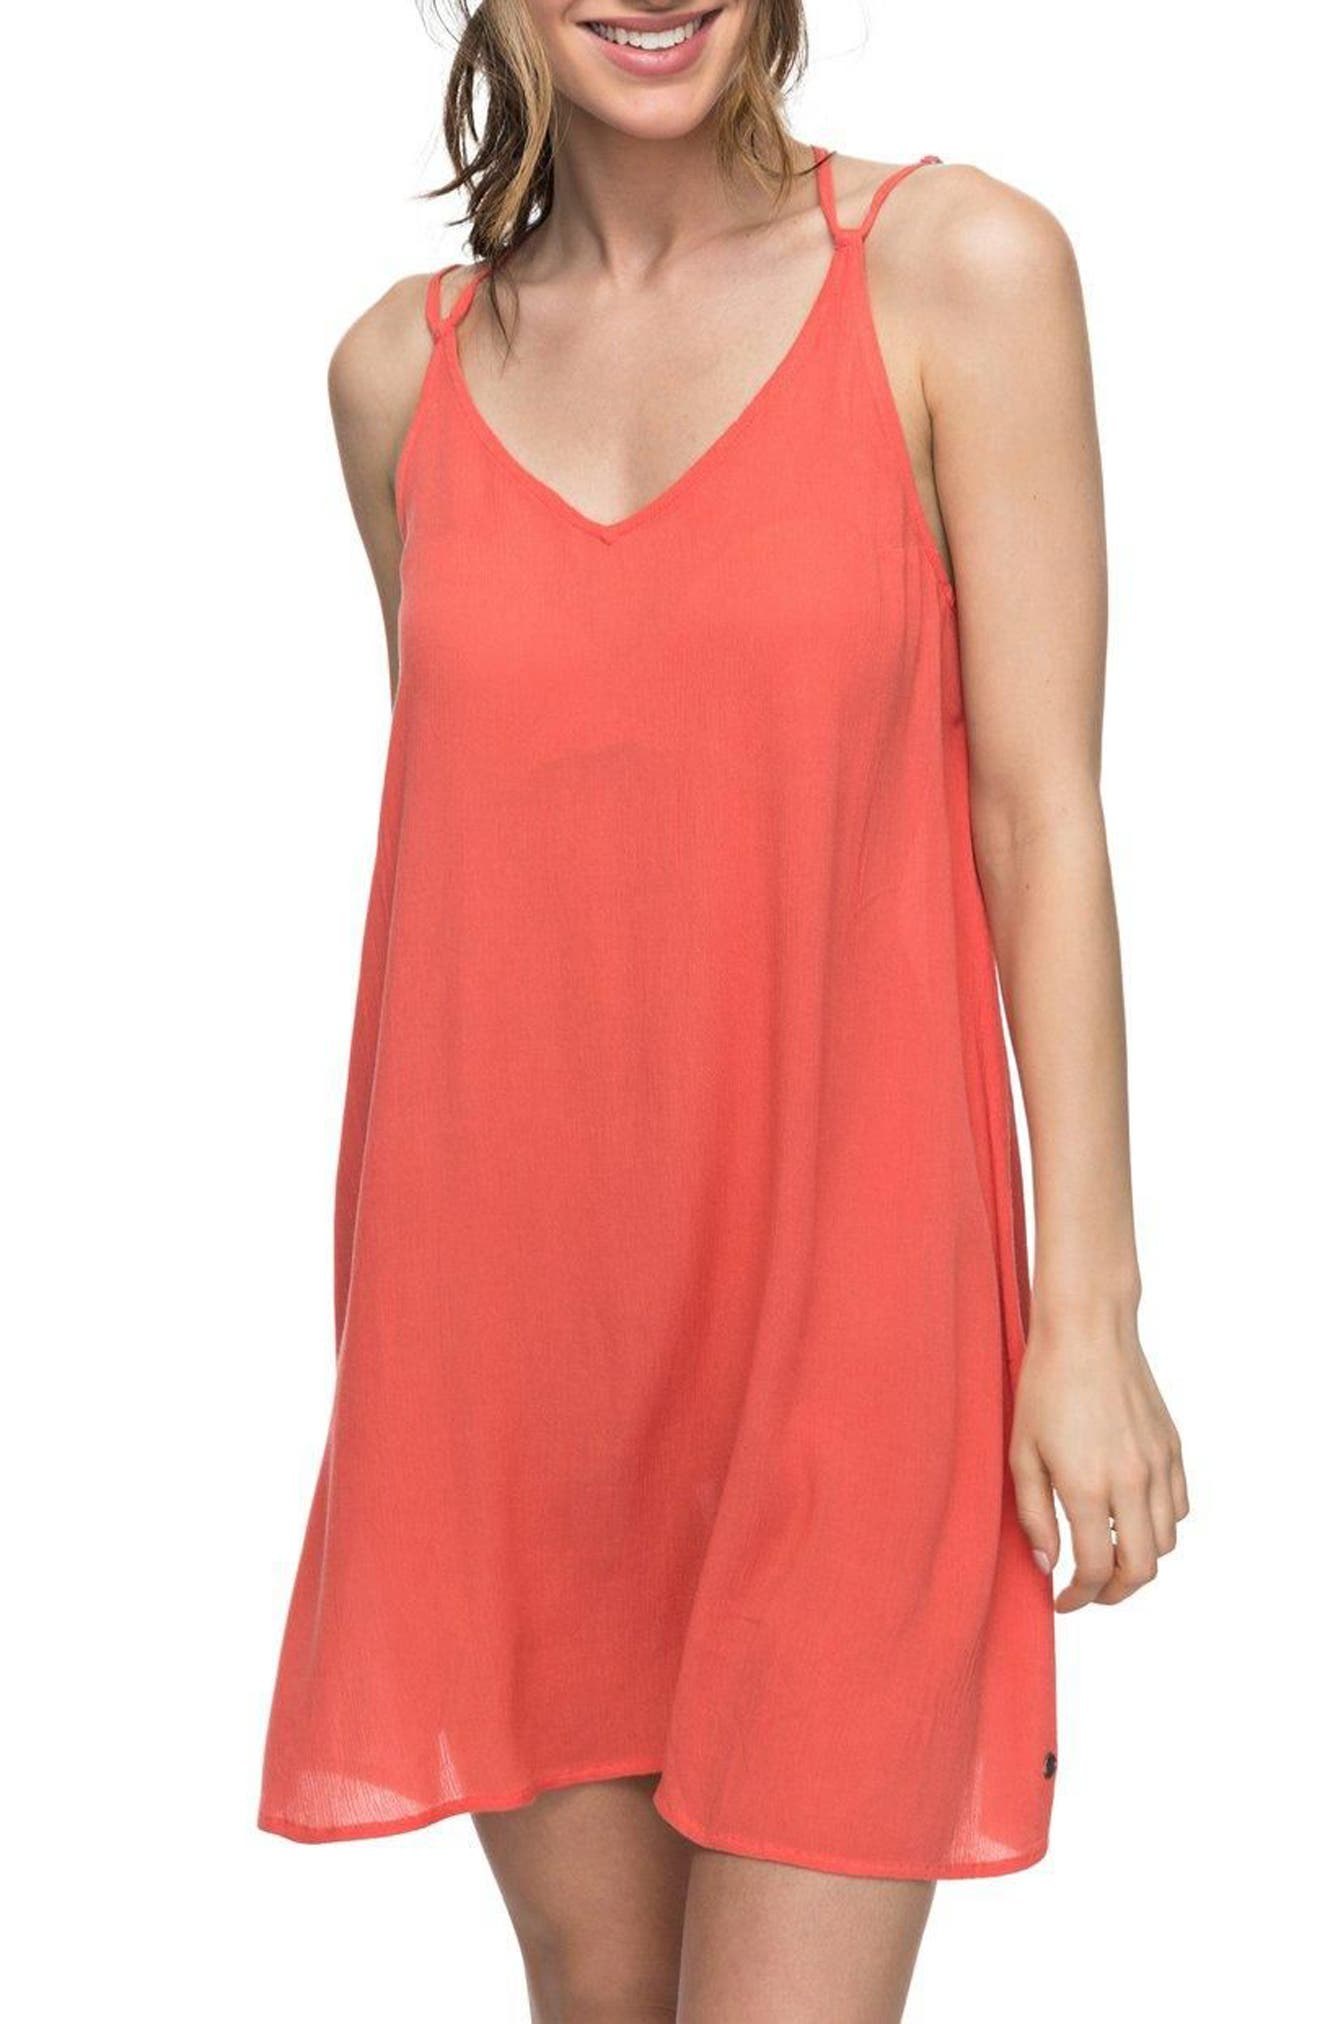 Alternate Image 1 Selected - Roxy Dome of Amalfi Strappy Camisole Dress